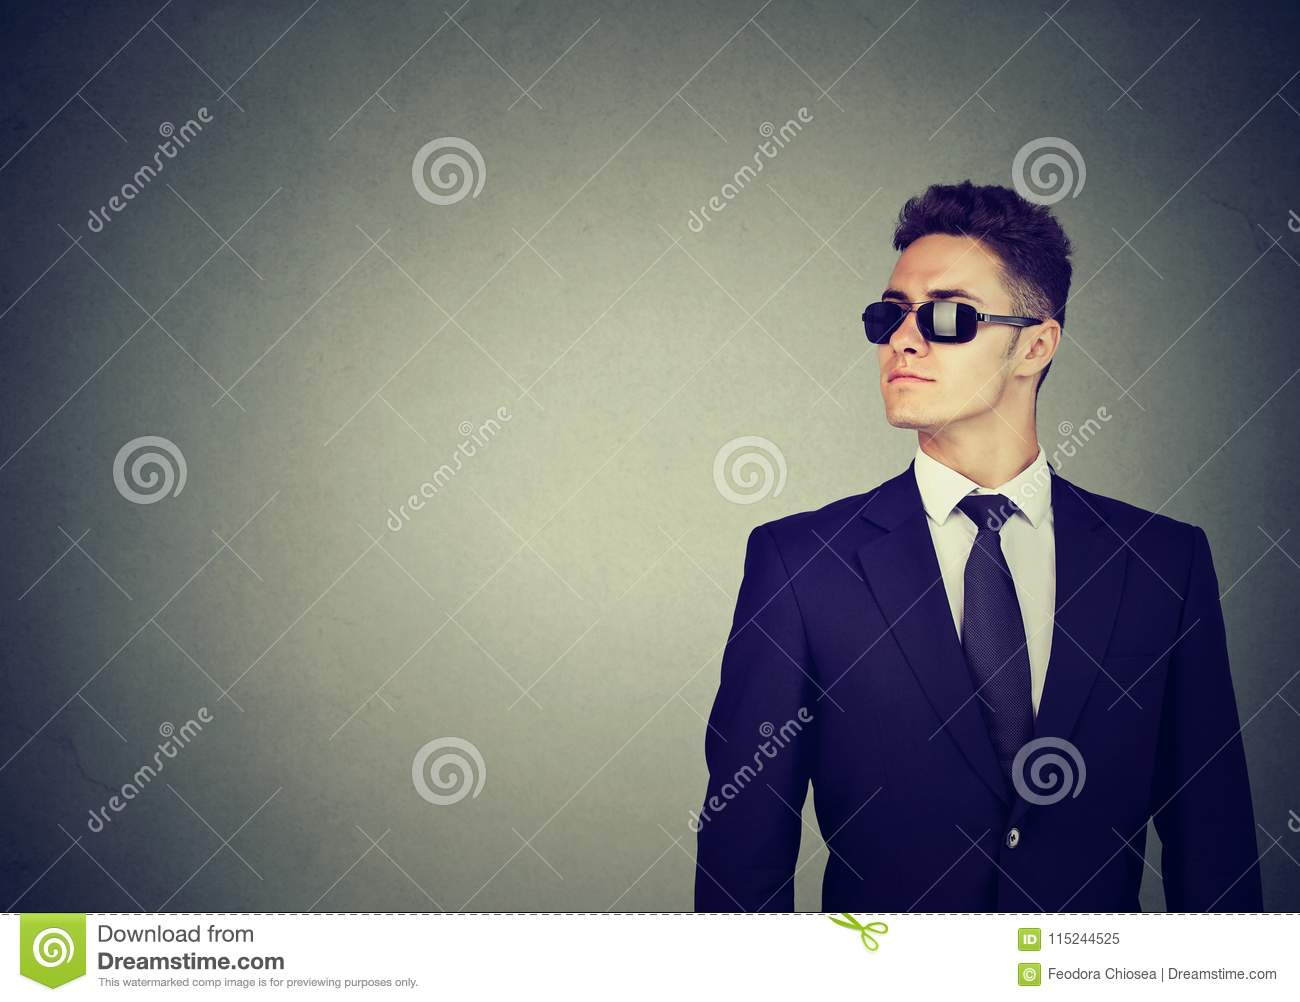 Business guy in sunglasses and suit on gray wall background